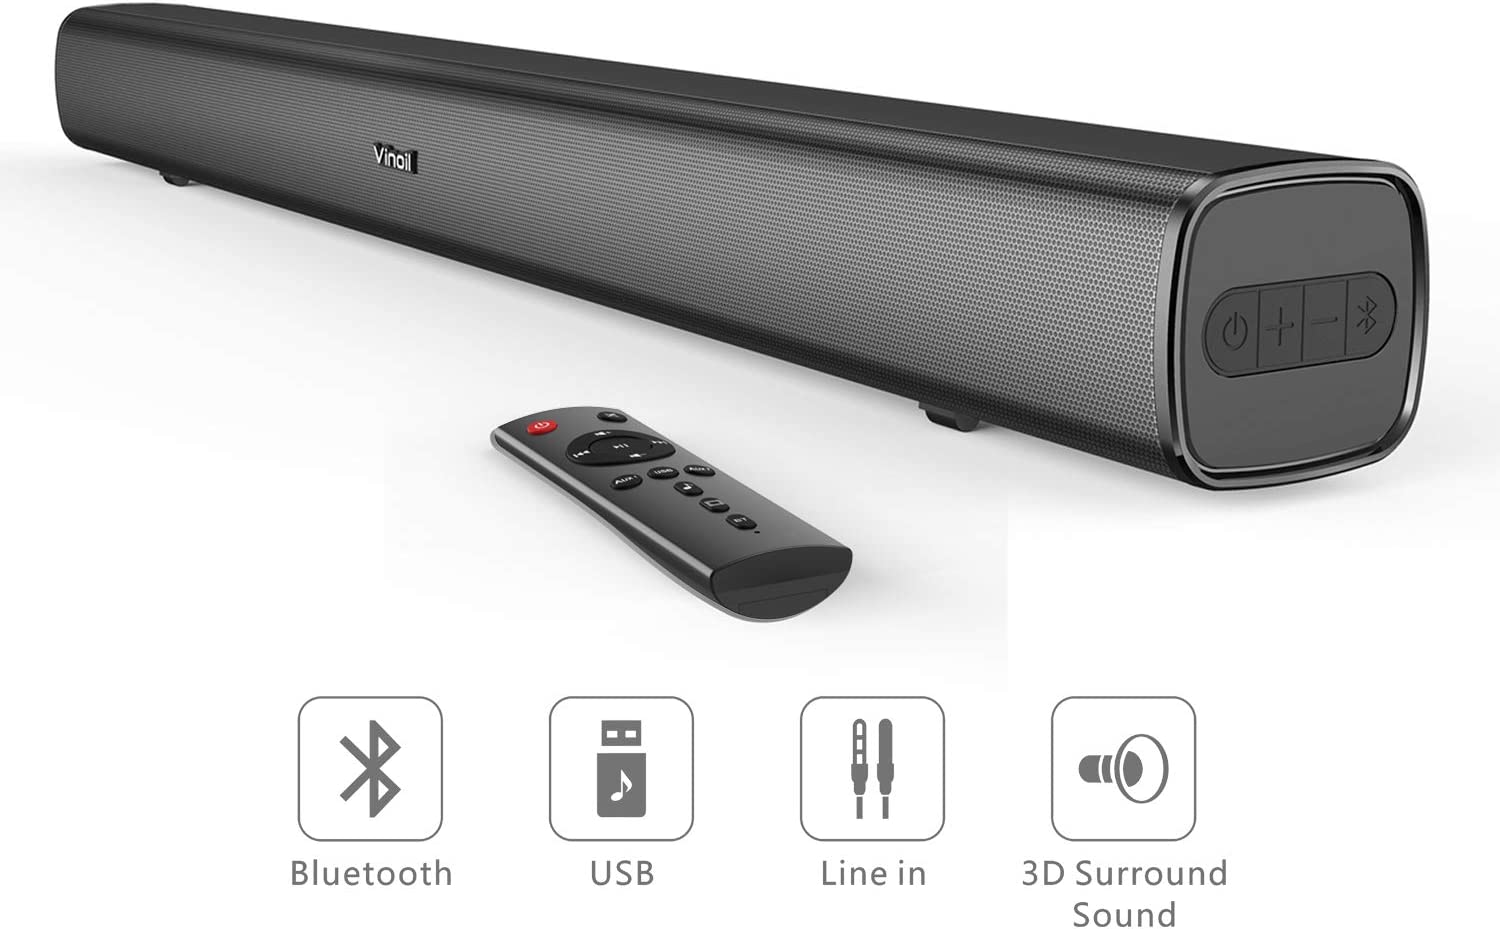 Soundbar, Wired & Wireless Bluetooth Home Theater Stereo Speaker, 30-Inch Audio Soundbar for TV, AUX/RCA/USB Connection, Wall Mountable, Remote Control